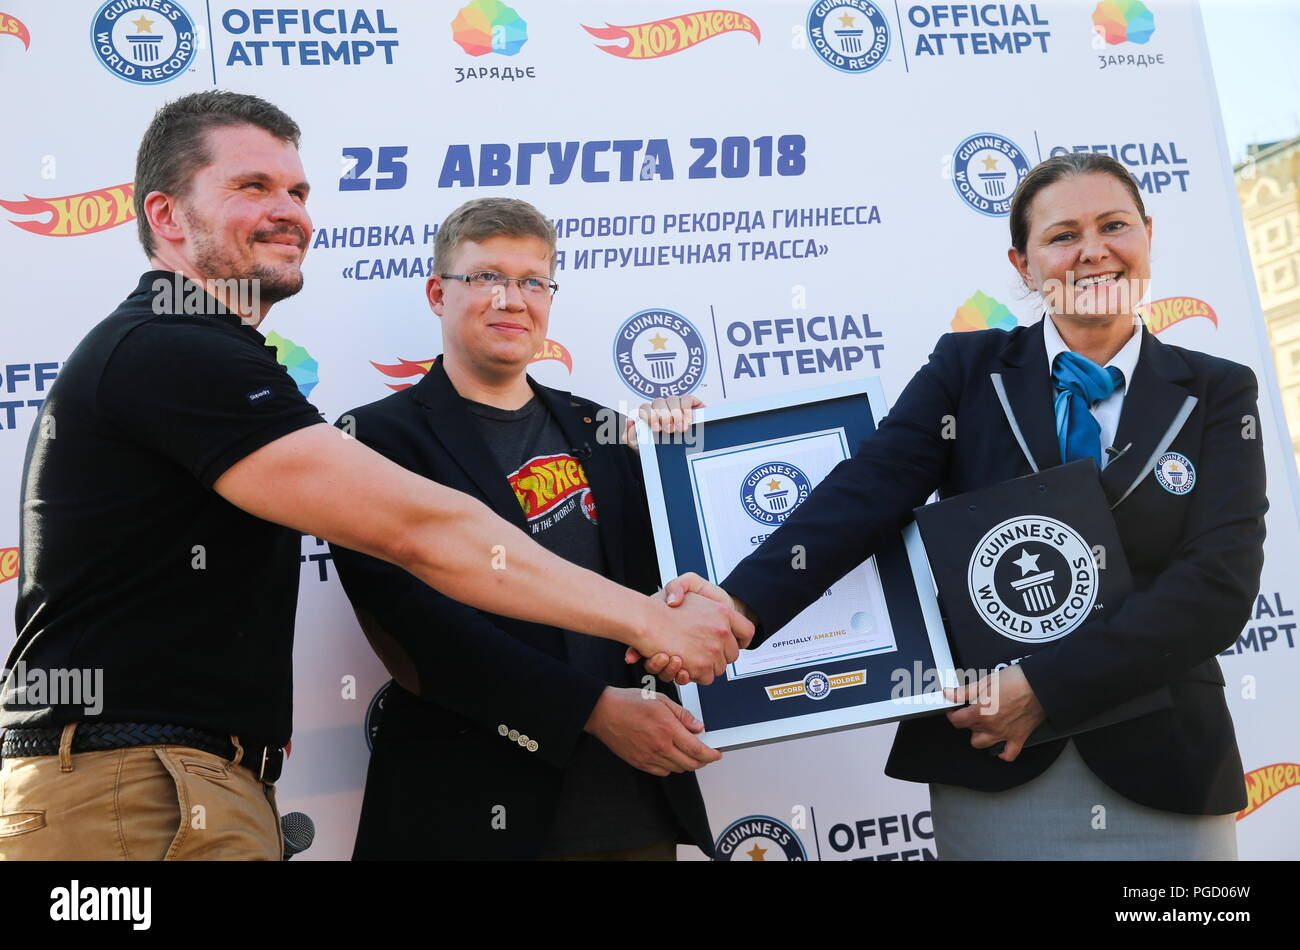 Moscow, Russia. 25th Aug, 2018. MOSCOW, RUSSIA - AUGUST 25, 2018: Guinness World Records representative Sheyda Subashi-Gemidji (R) gives a certificate to Hot Wheels Russia officials Kirill Frolov and Alexei Dmitriyev (L-R) as Hot Wheels brand toy cars have successfully completed the track loop of 560m [1,837ft] in length at Moscow's Zaryadye Park, thus beating the previous Guinness world record of 554m set in the US for the largest Hot Wheels track loop. Vladimir Gerdo/TASS Credit: ITAR-TASS News Agency/Alamy Live News - Stock Image